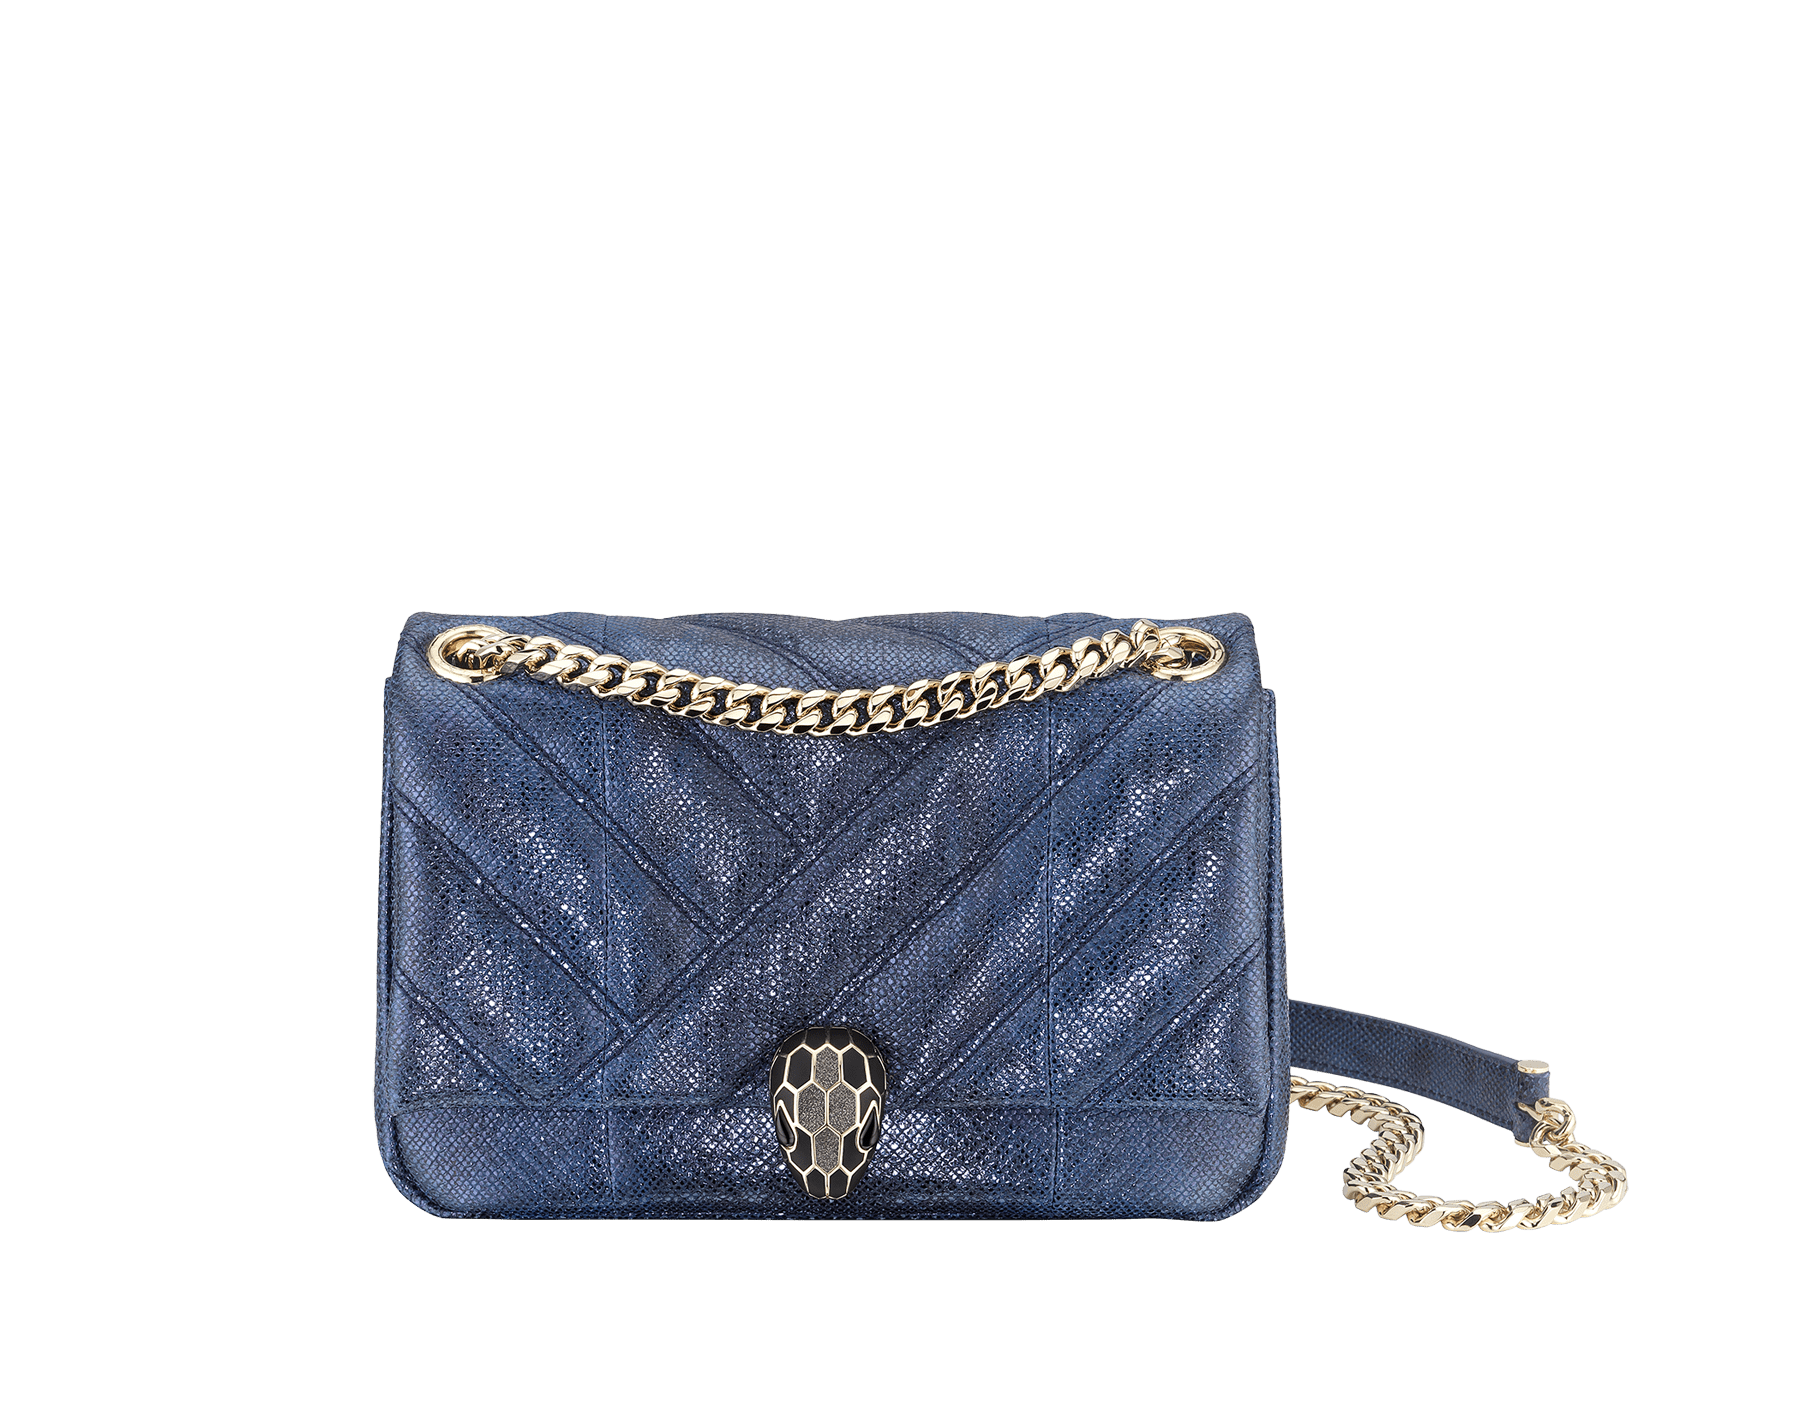 """Serpenti Cabochon"" shoulder bag in soft, quilted, metallic Midnight Sapphire blue karung skin with graphic motif and black nappa leather inner lining. Alluring snakehead closure in light gold-plated brass enriched with matte black and glittery Hawk's Eye gray enamel and black onyx eyes. 290238 image 2"